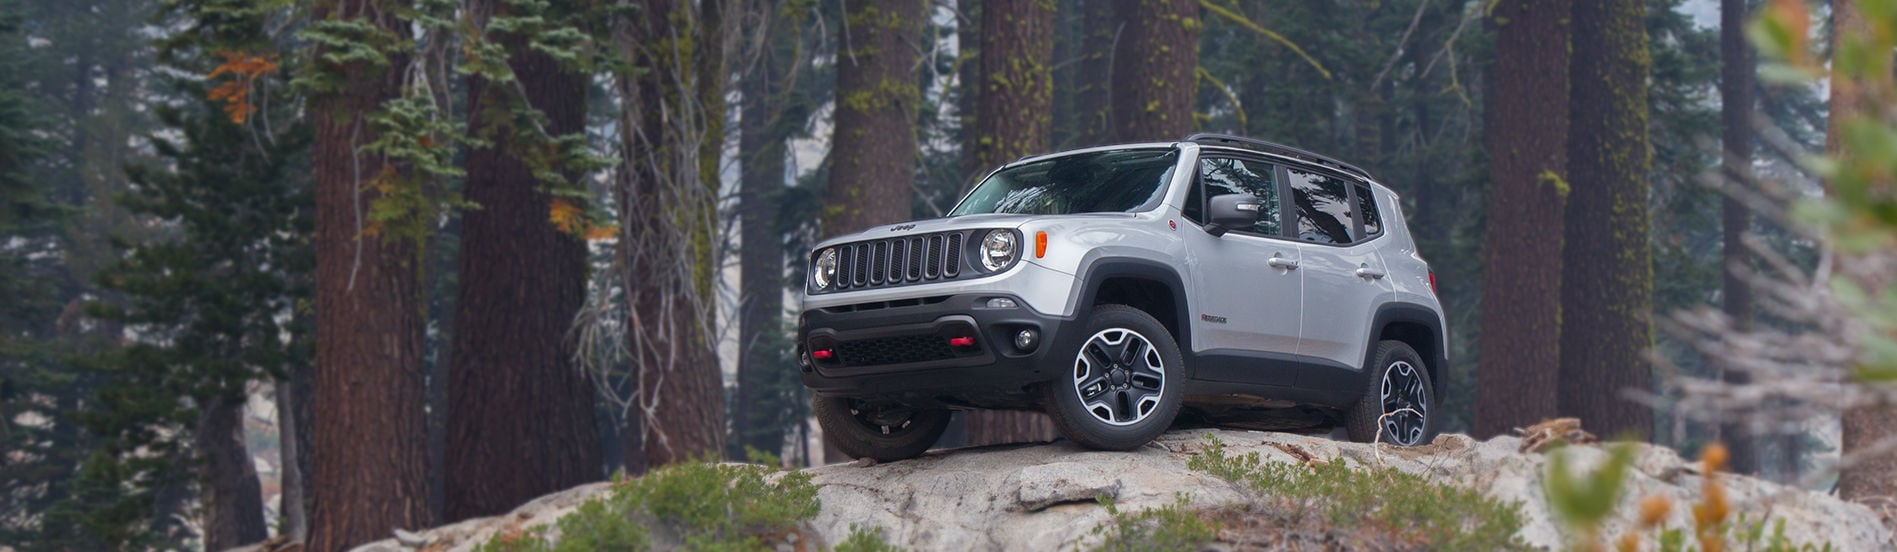 Jeep Renegade Tampa 2016 Small Suv In Florida Old For Sale Kbbcom